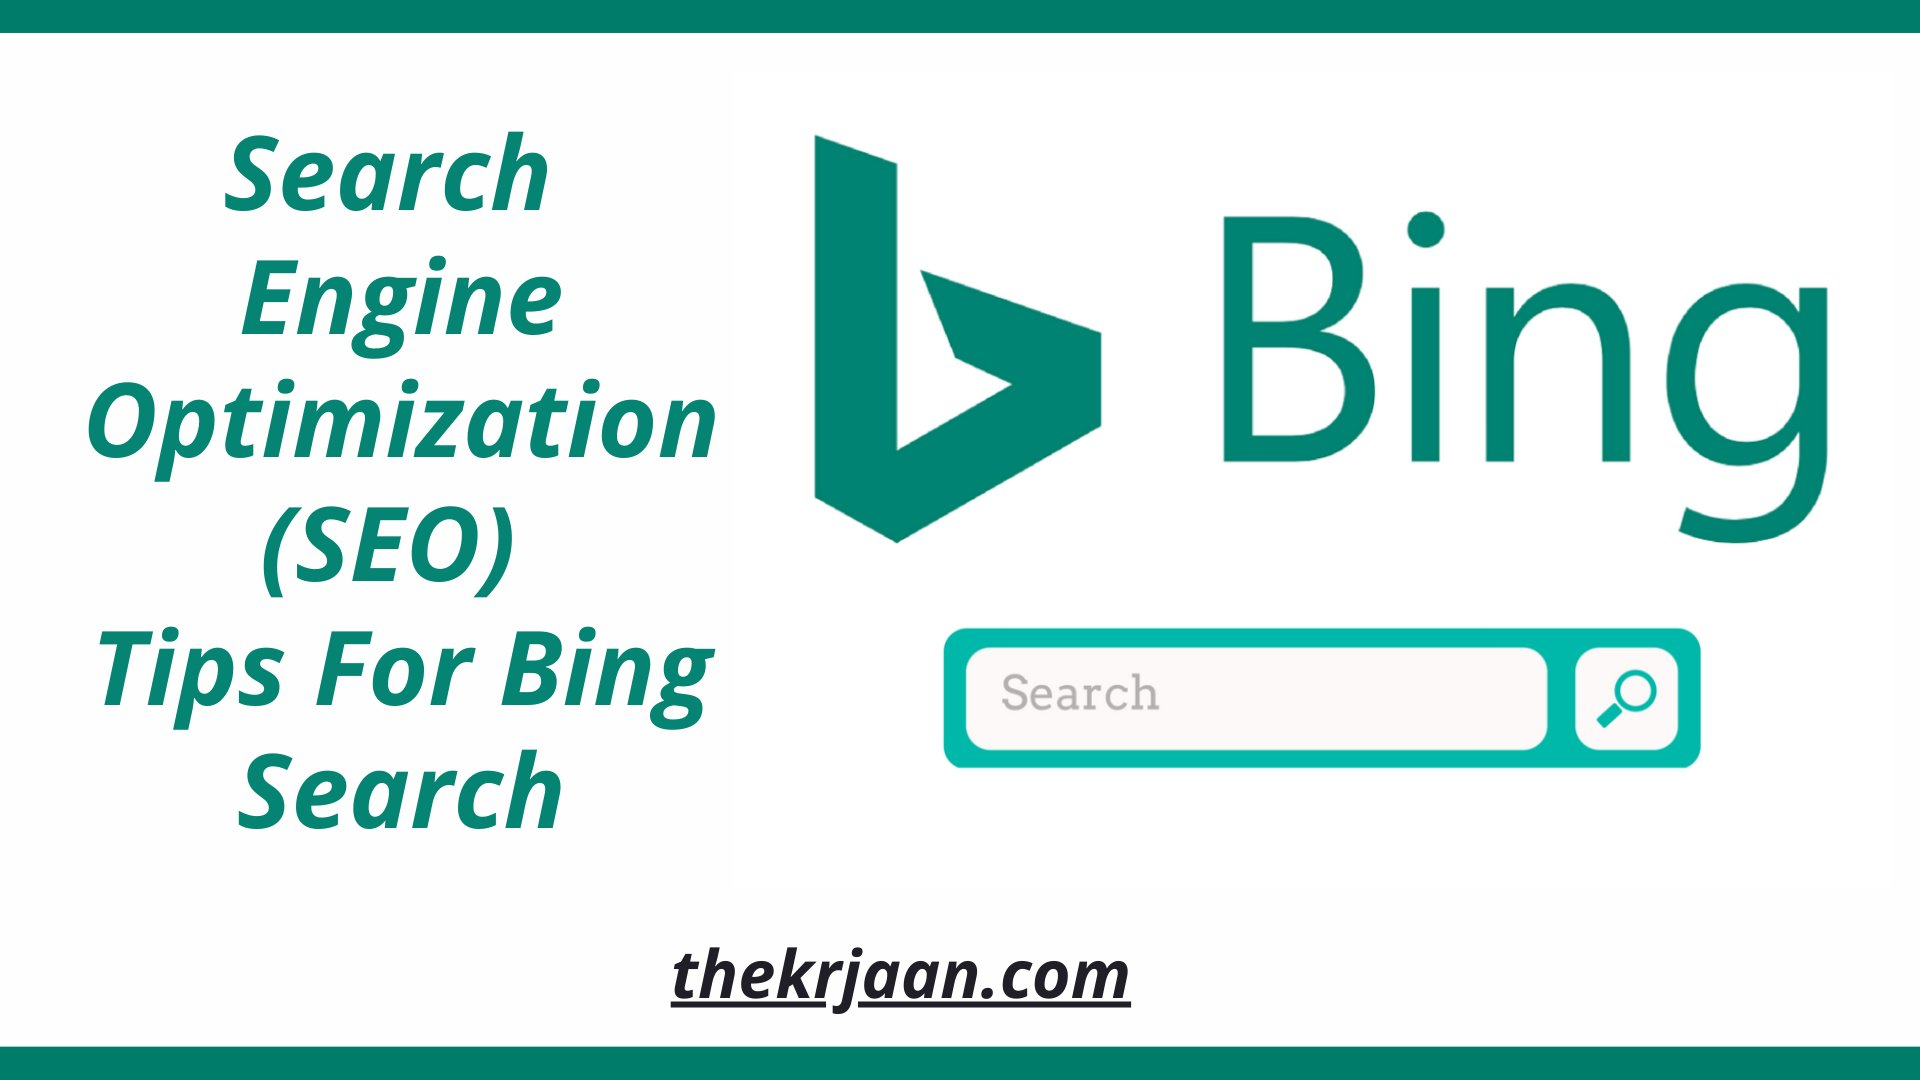 Search Engine Optimization (SEO) Tips For Bing Search